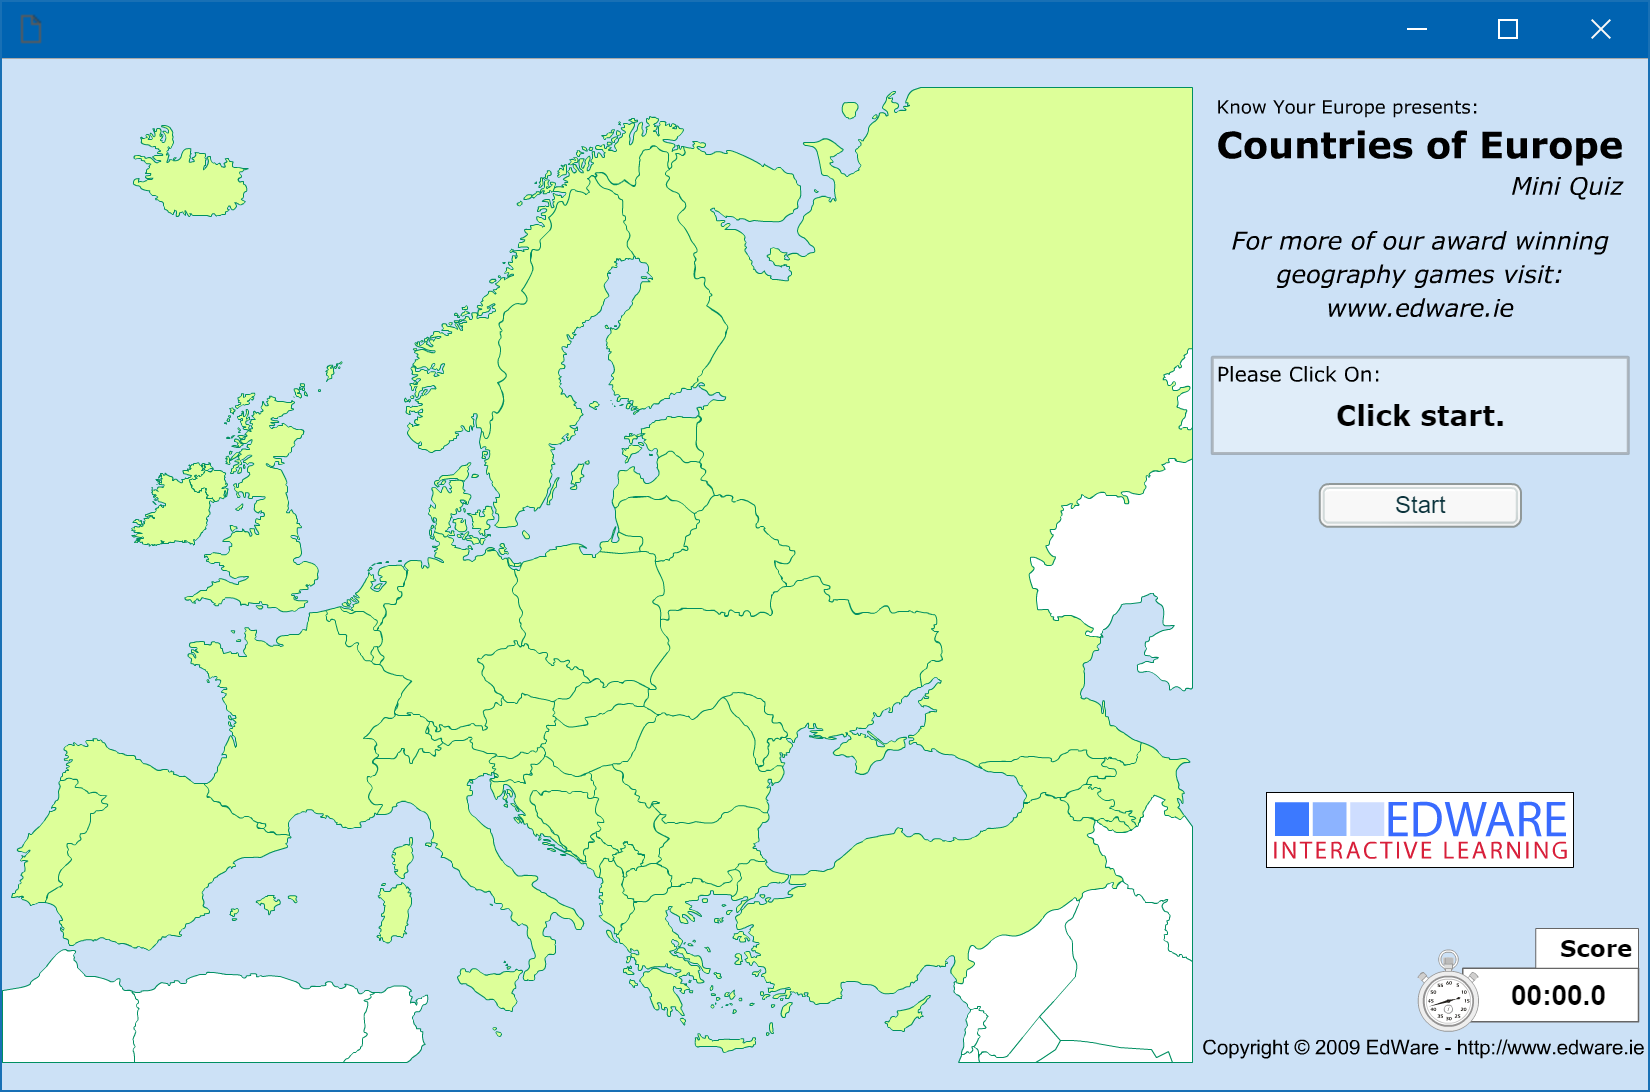 Countries of Europe: Mini Quiz